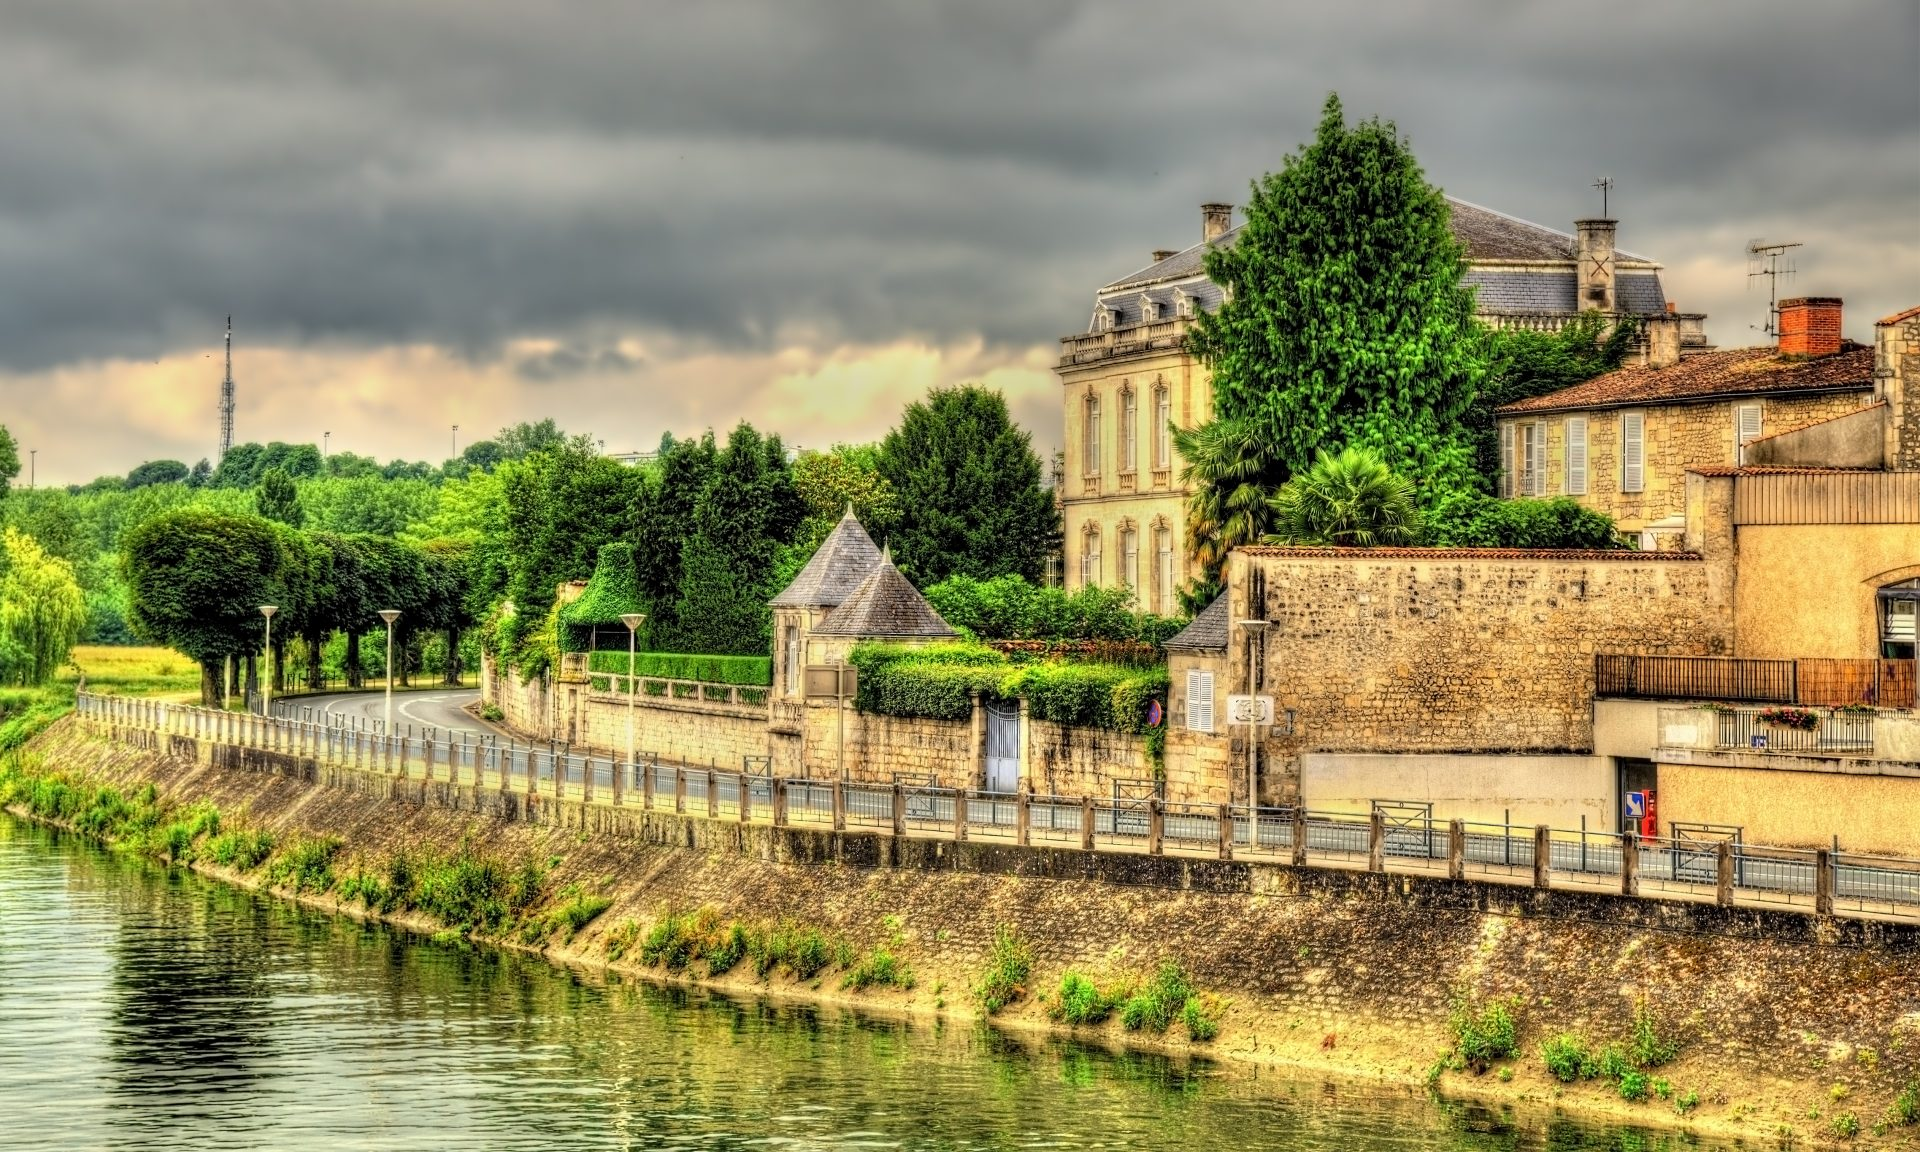 The embankment of the river Charente in Saintes